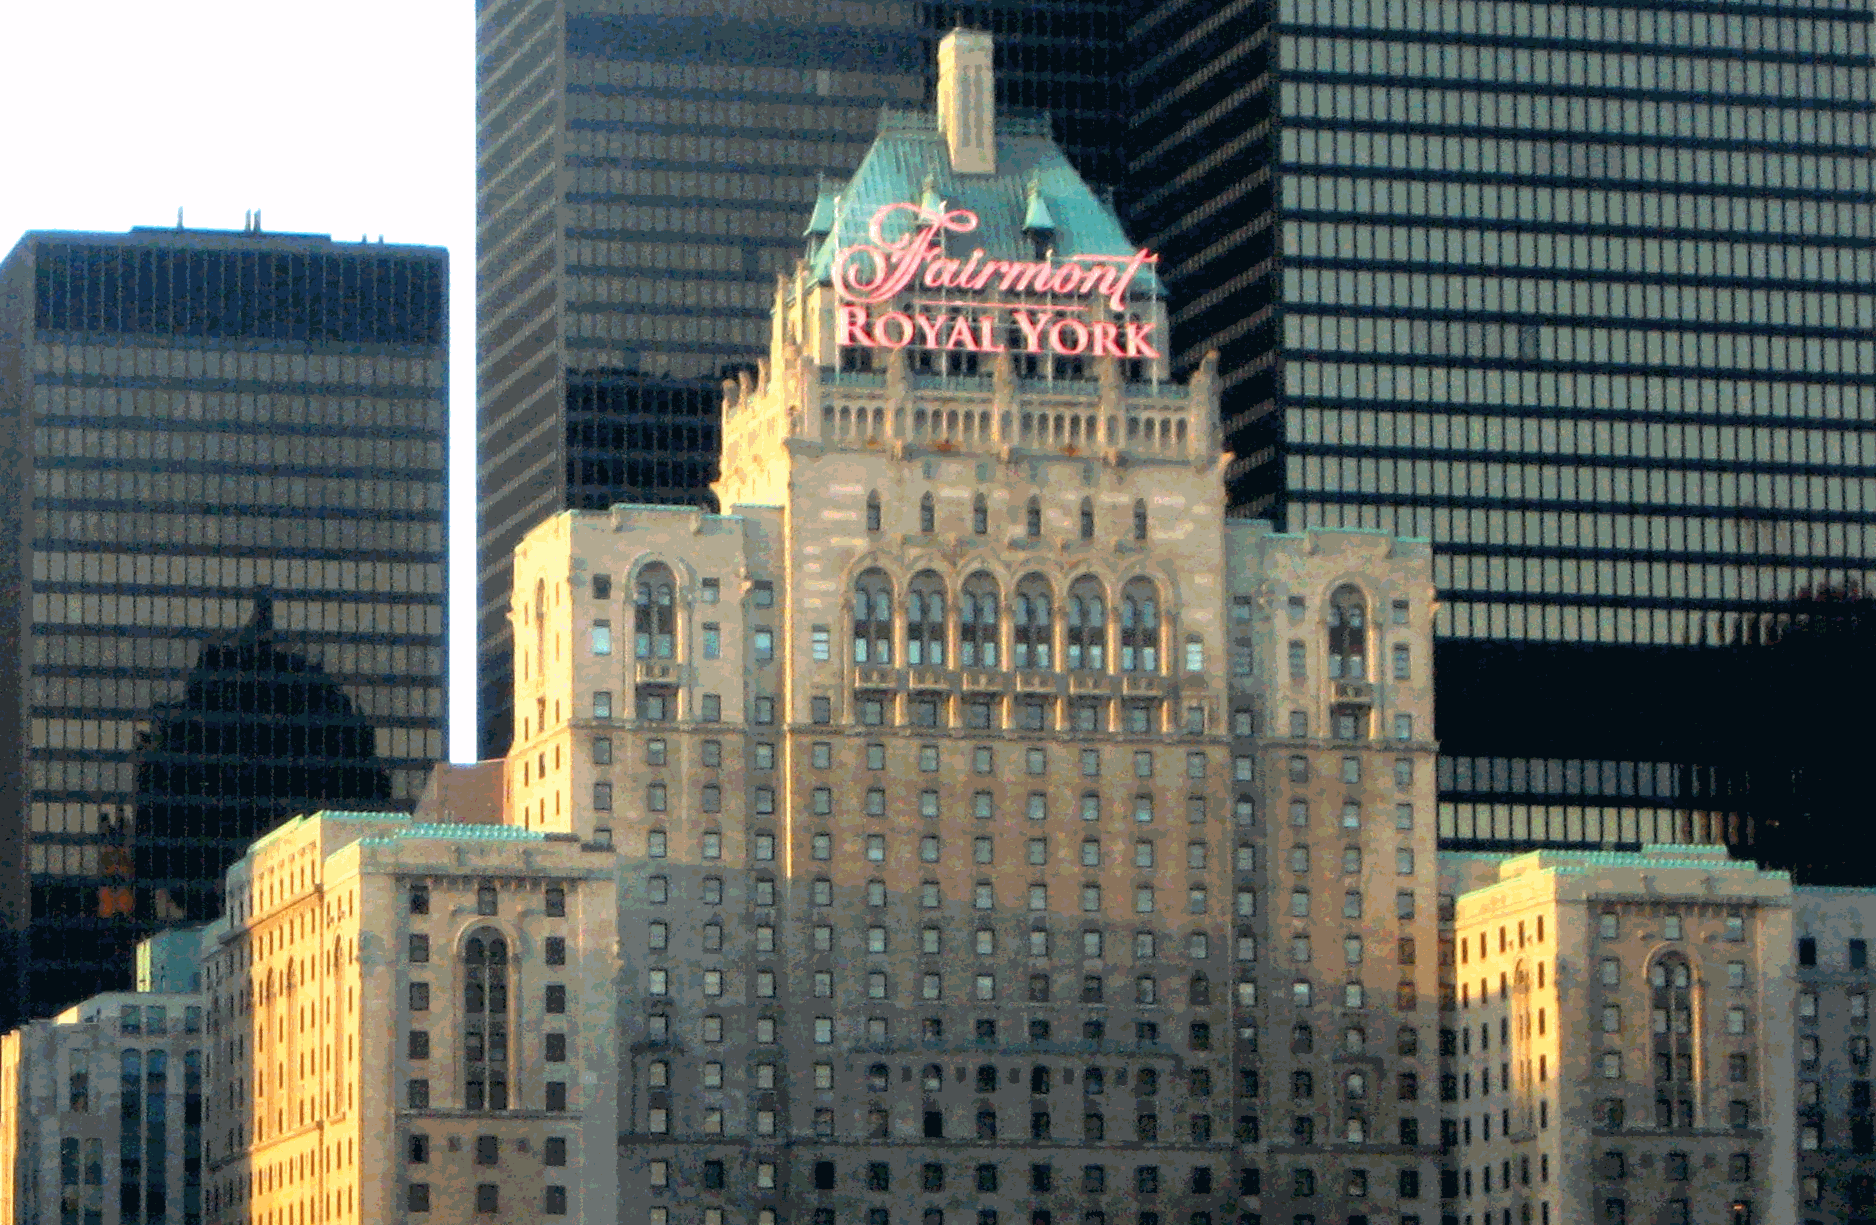 The Fairmont Royal York Hotel, Toronto - View from the Gardiner Expressway